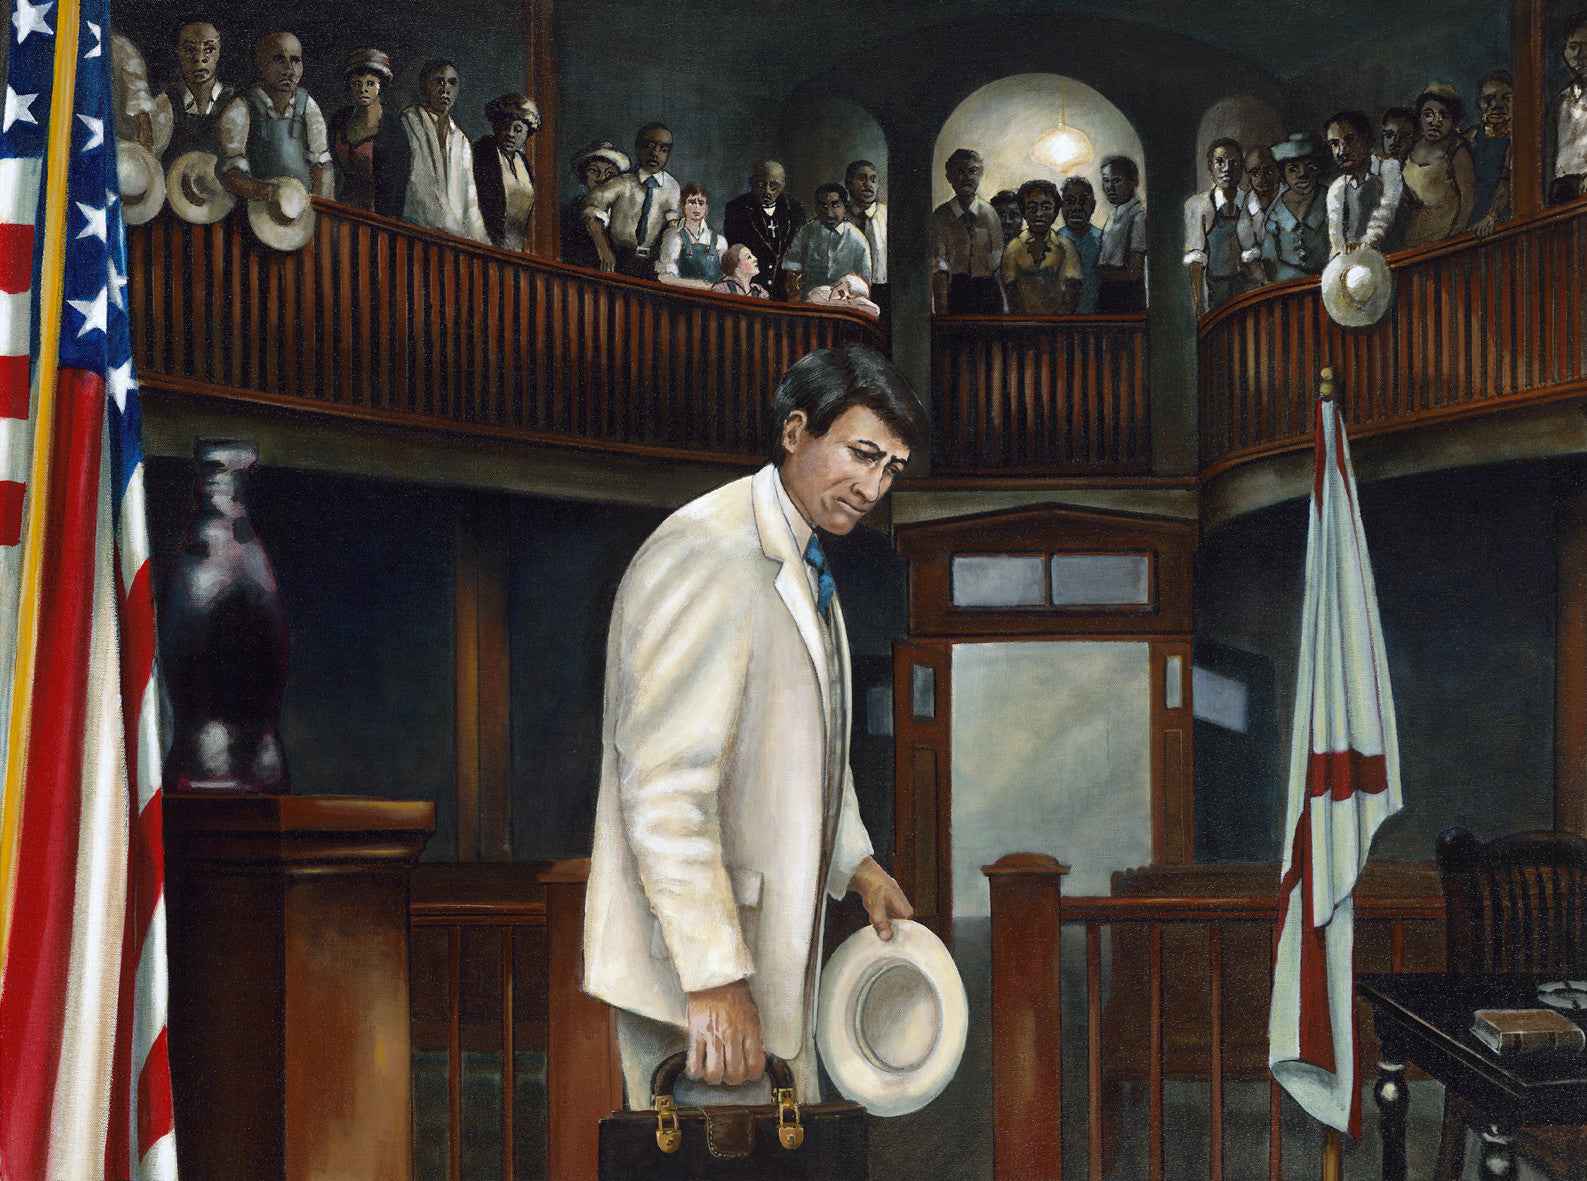 Atticus Finch leaves the Maycomb Courthouse by artist Trevor Goring